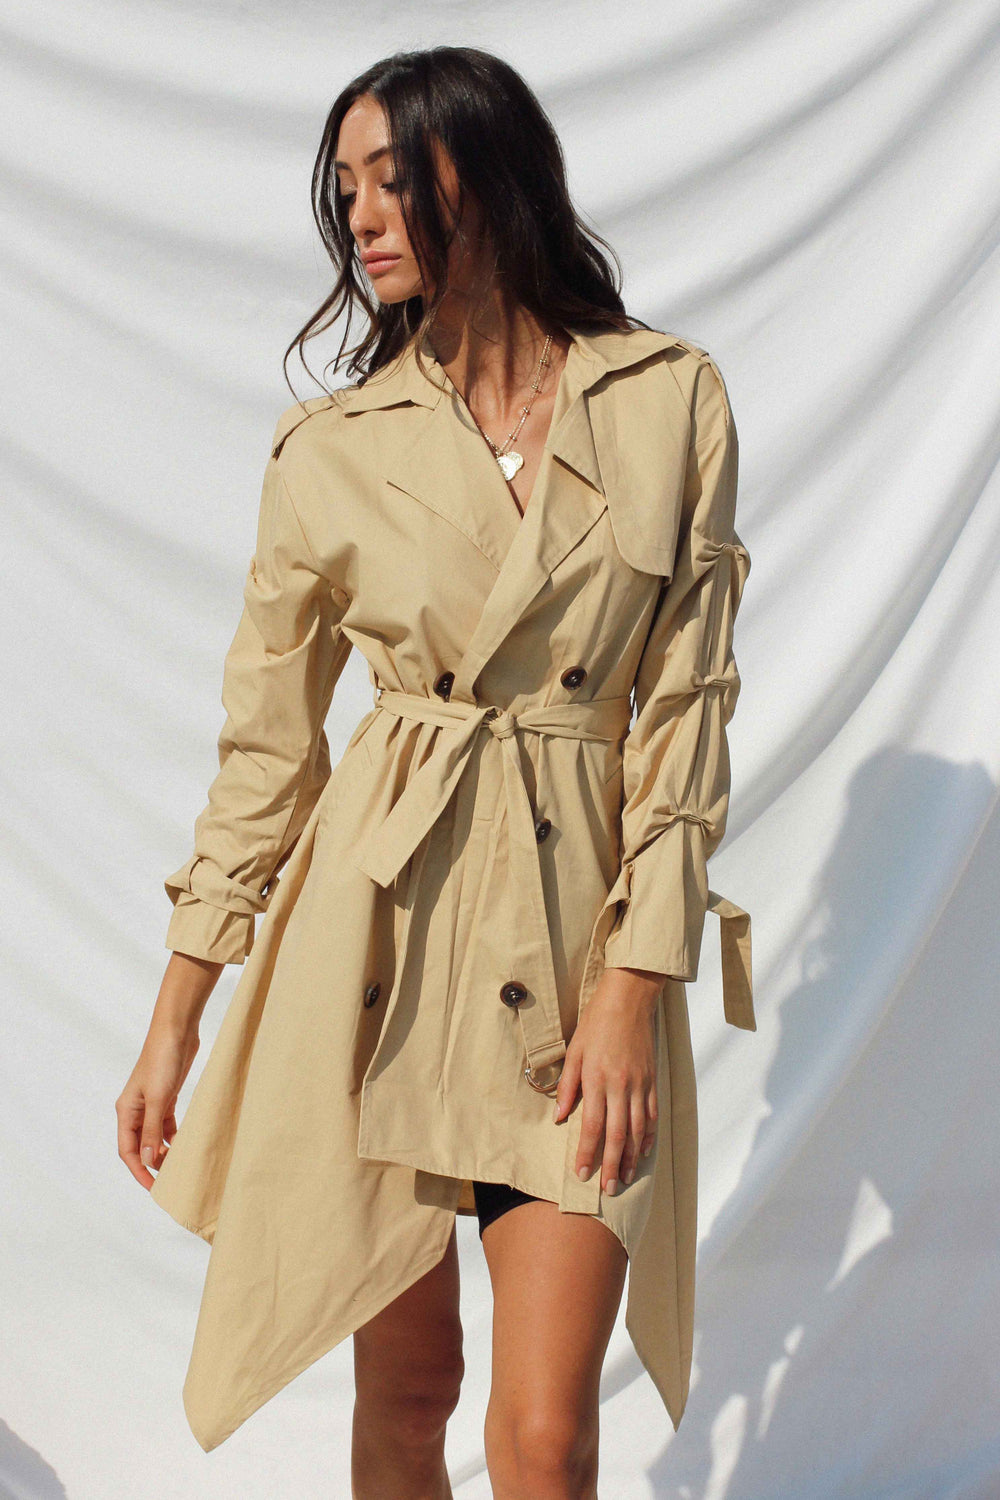 MILENA TRENCH COAT - Chic Le Frique